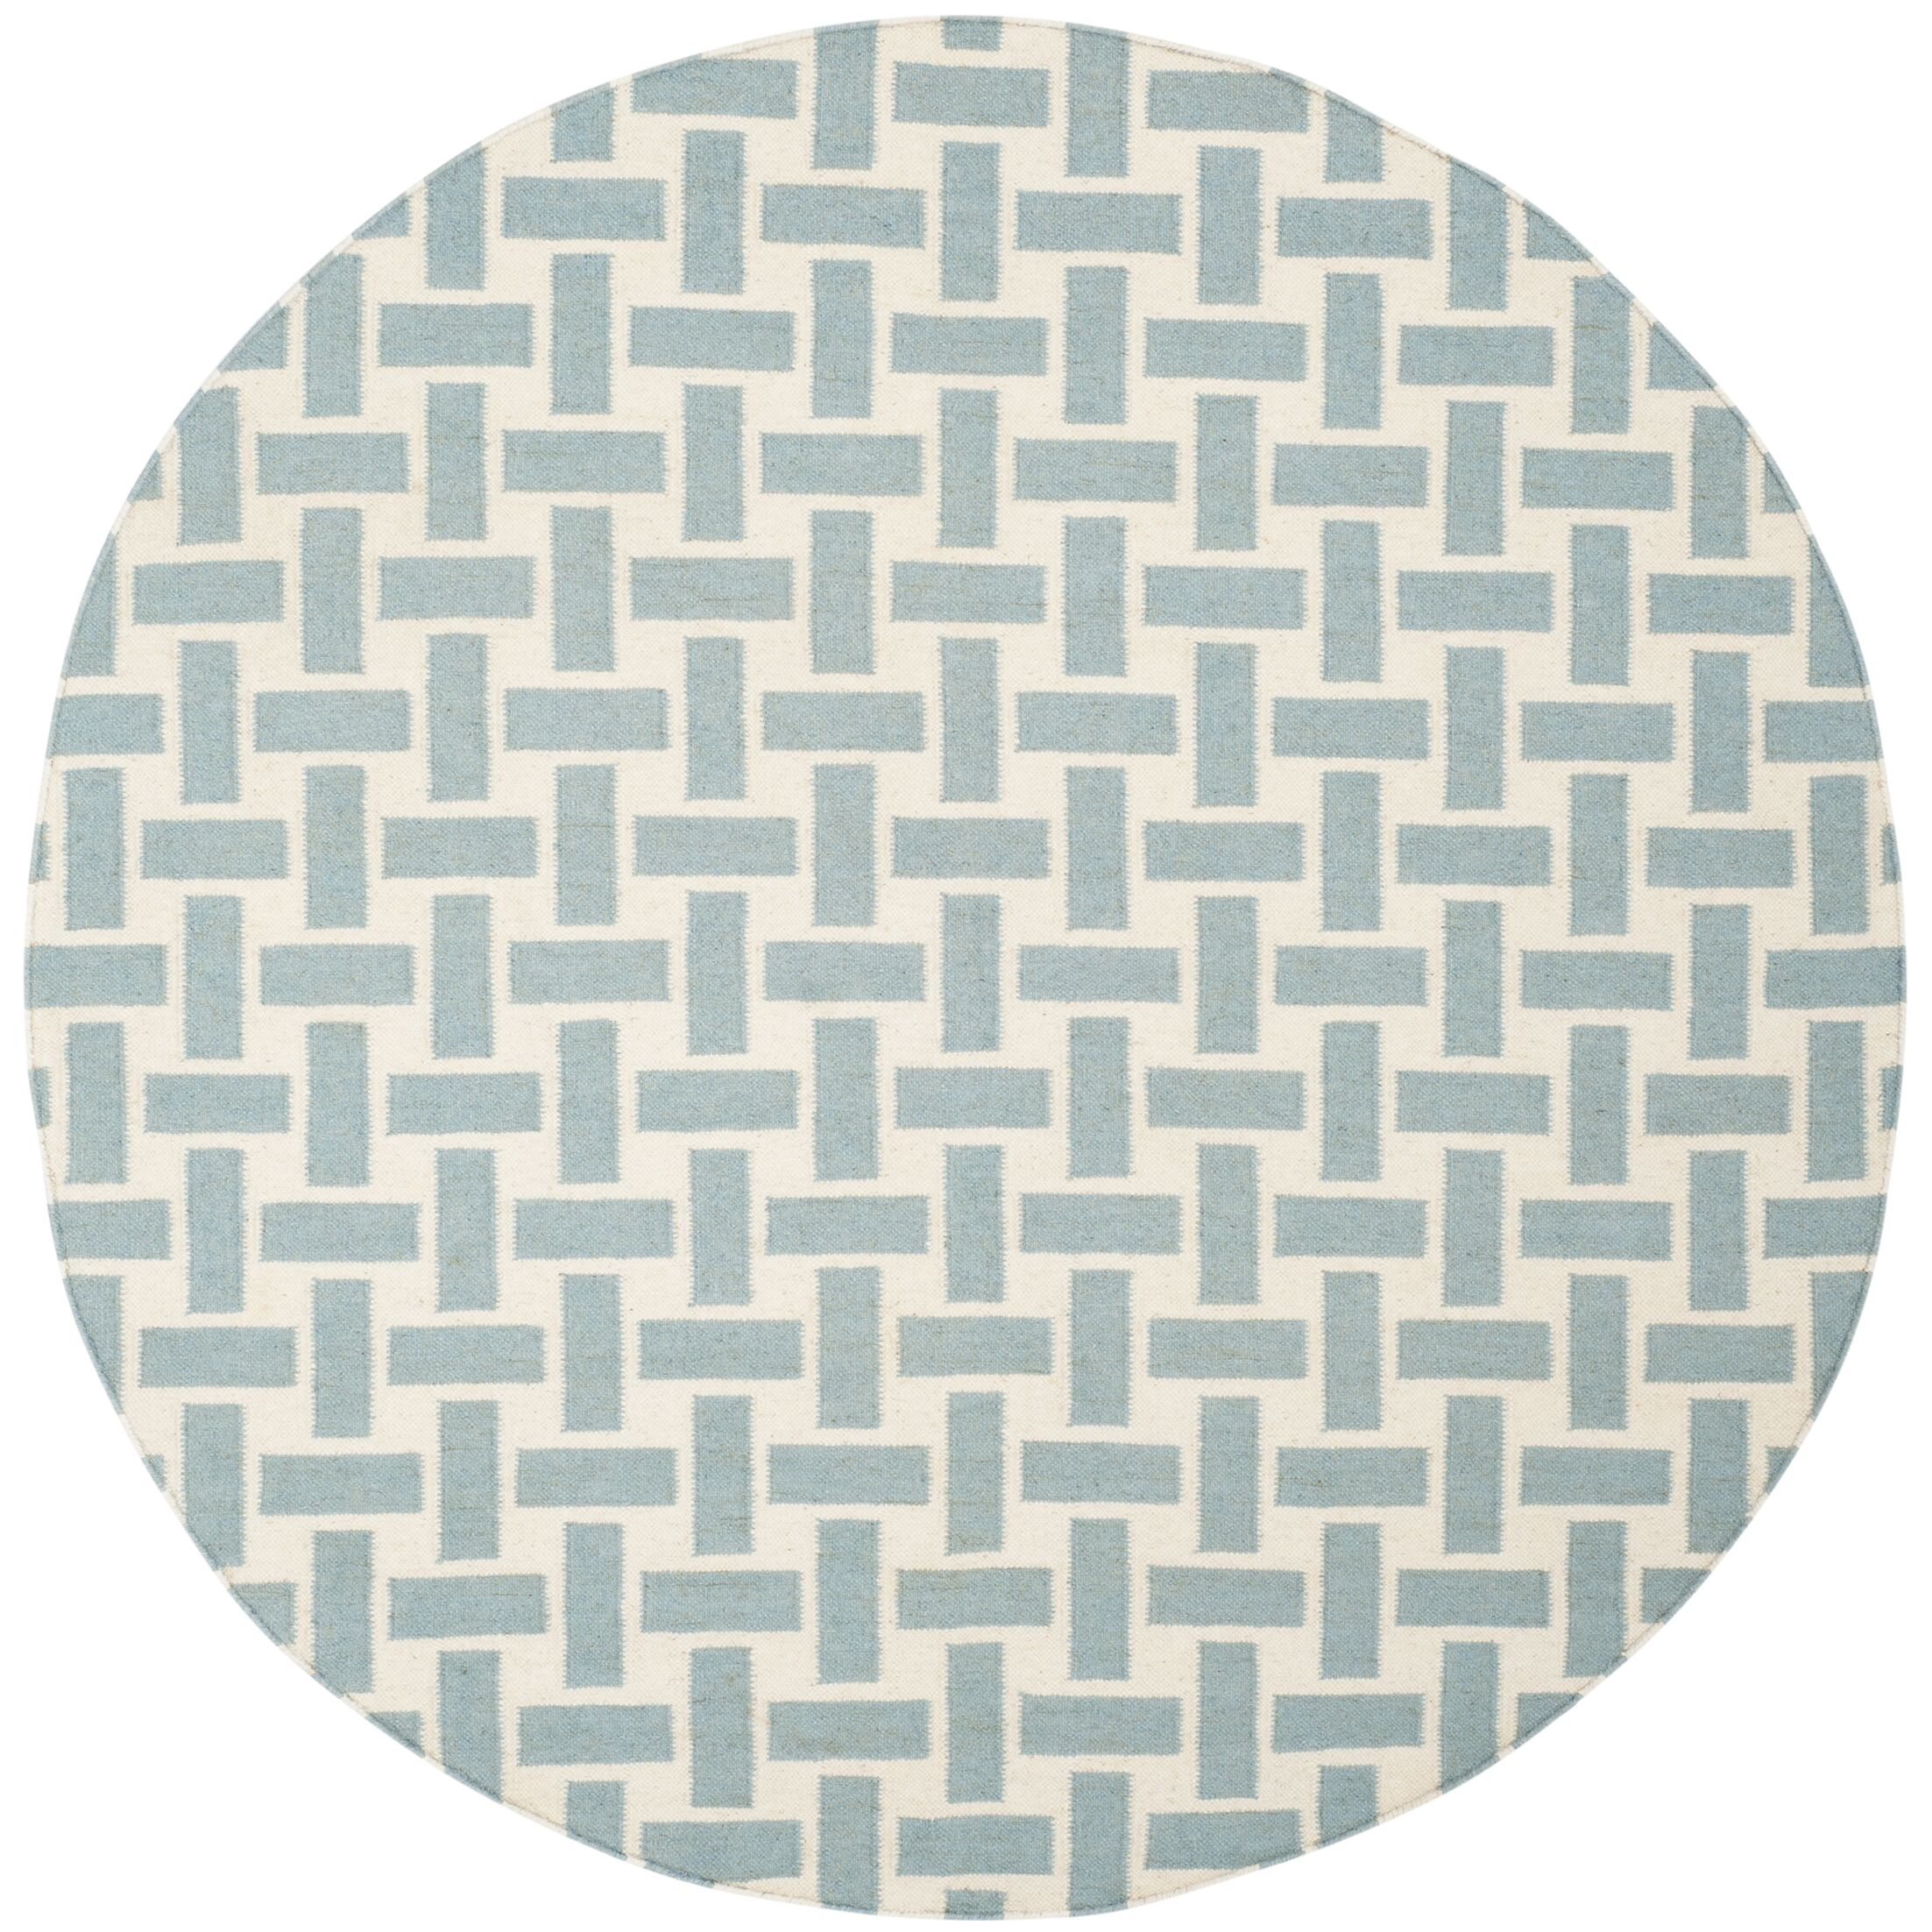 Masaryktown Hand-Woven Turquoise & Ivory Area Rug Rug Size: Round 6' x 6'